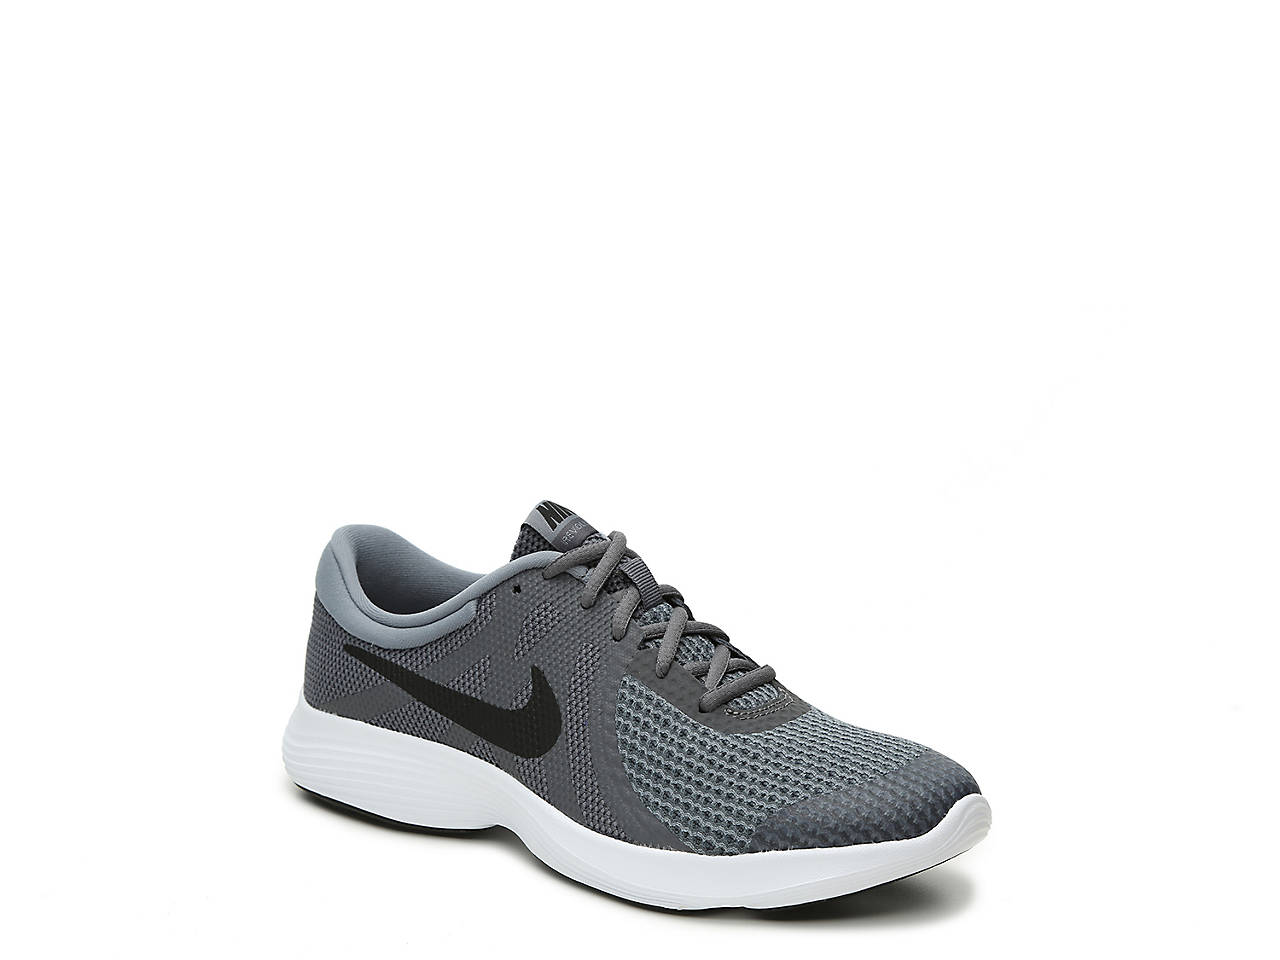 60a9e6fbc842 Nike Revolution 4 Youth Running Shoe Kids Shoes